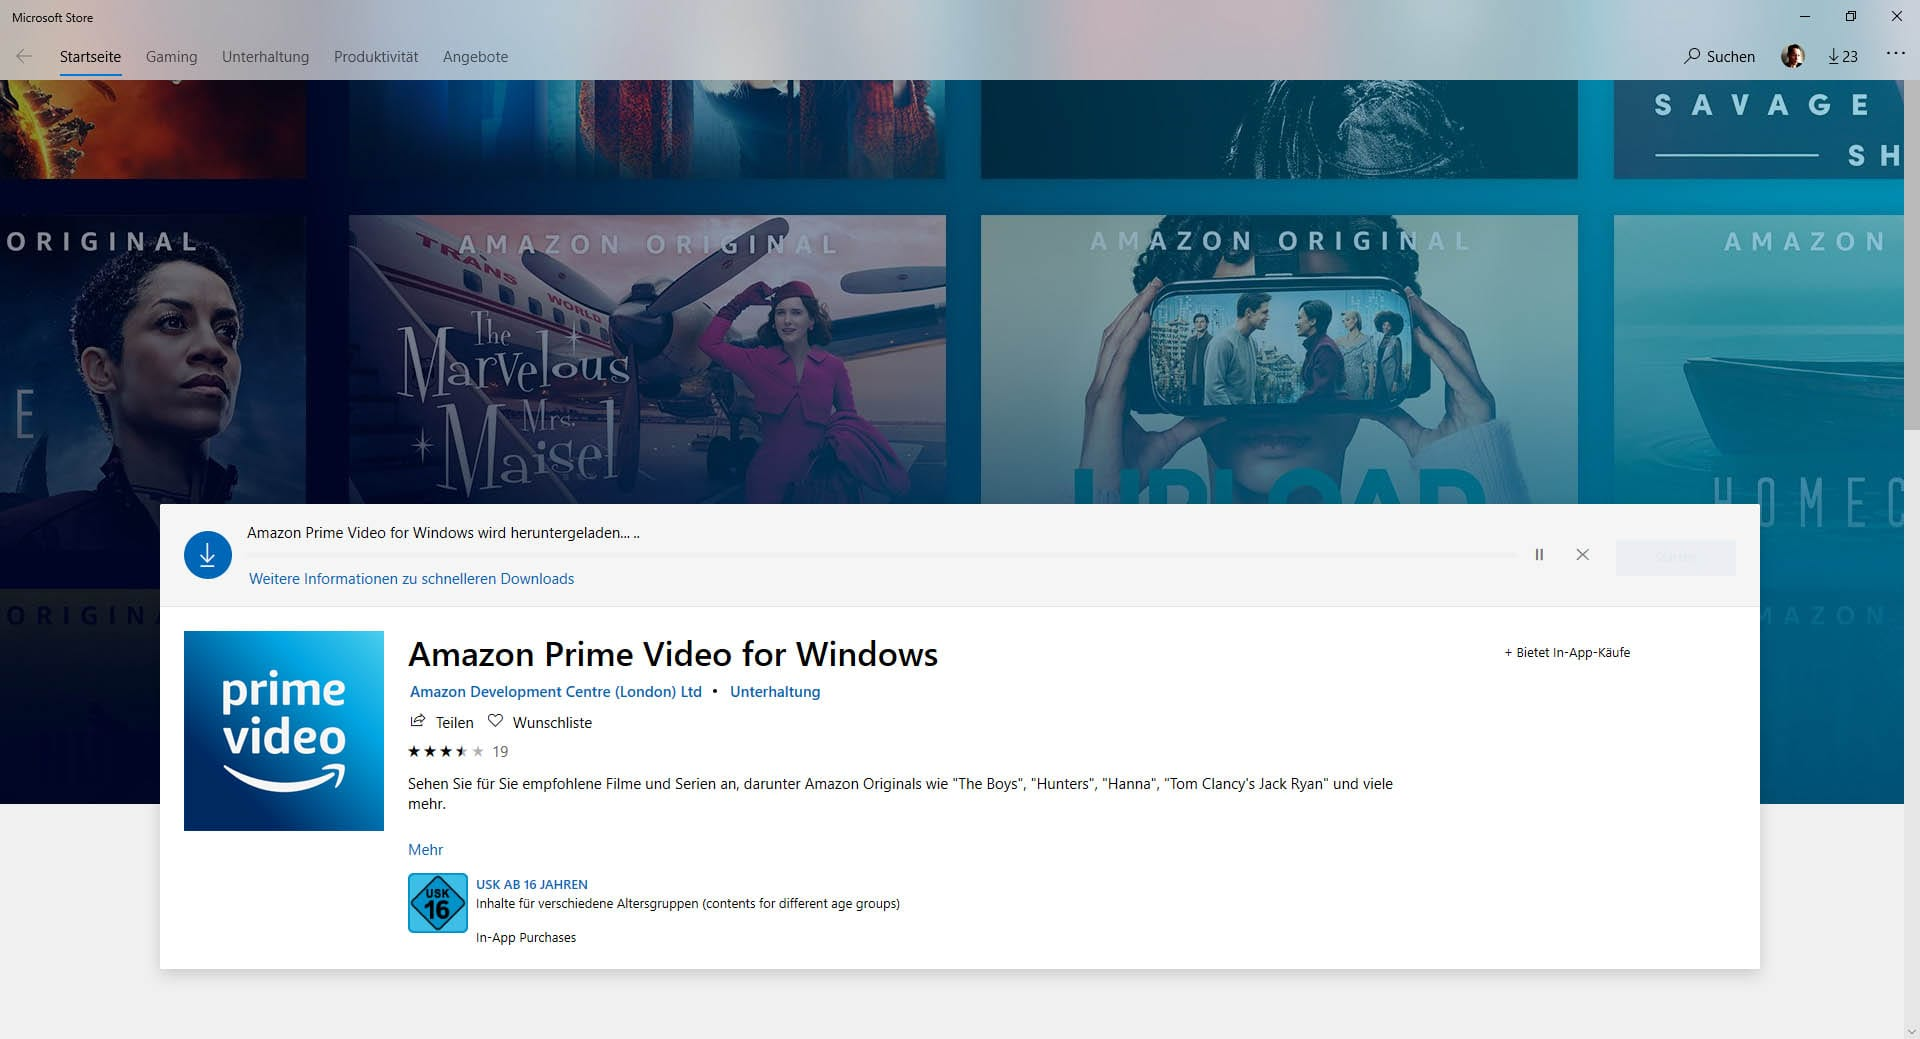 Amazon Prime Video App für PC